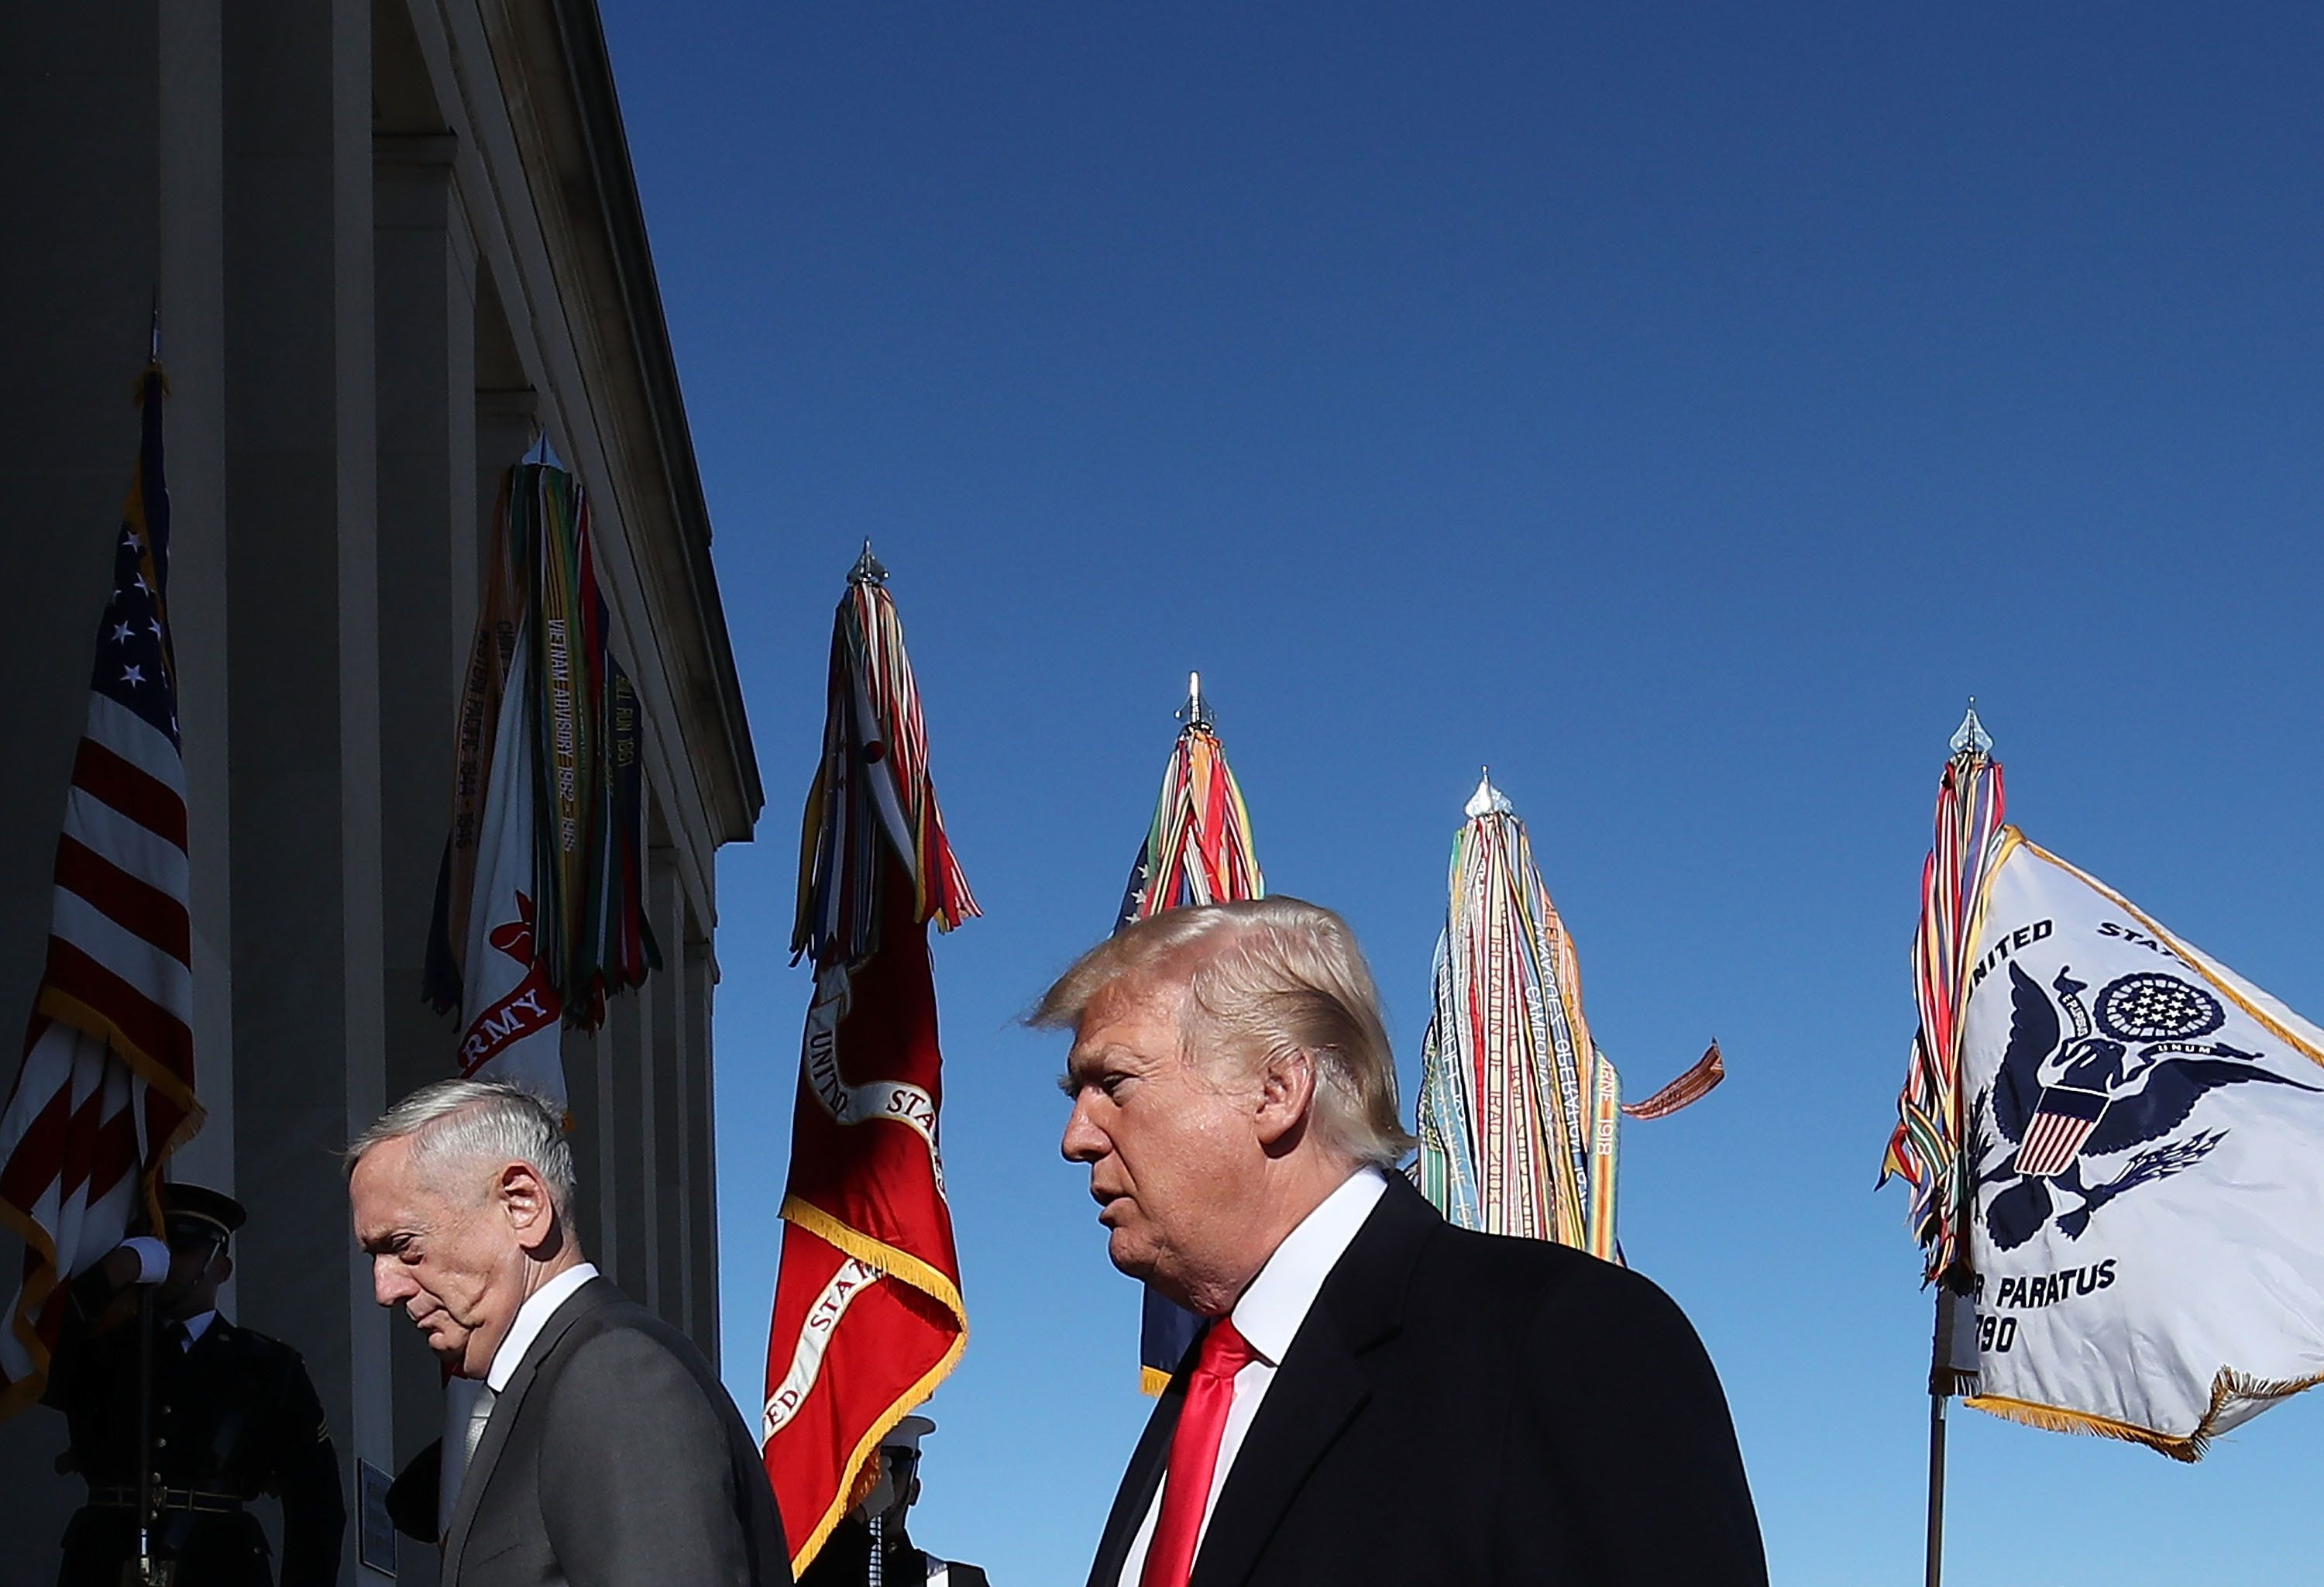 Pentagon weighing options for United States  military parade - Mattis